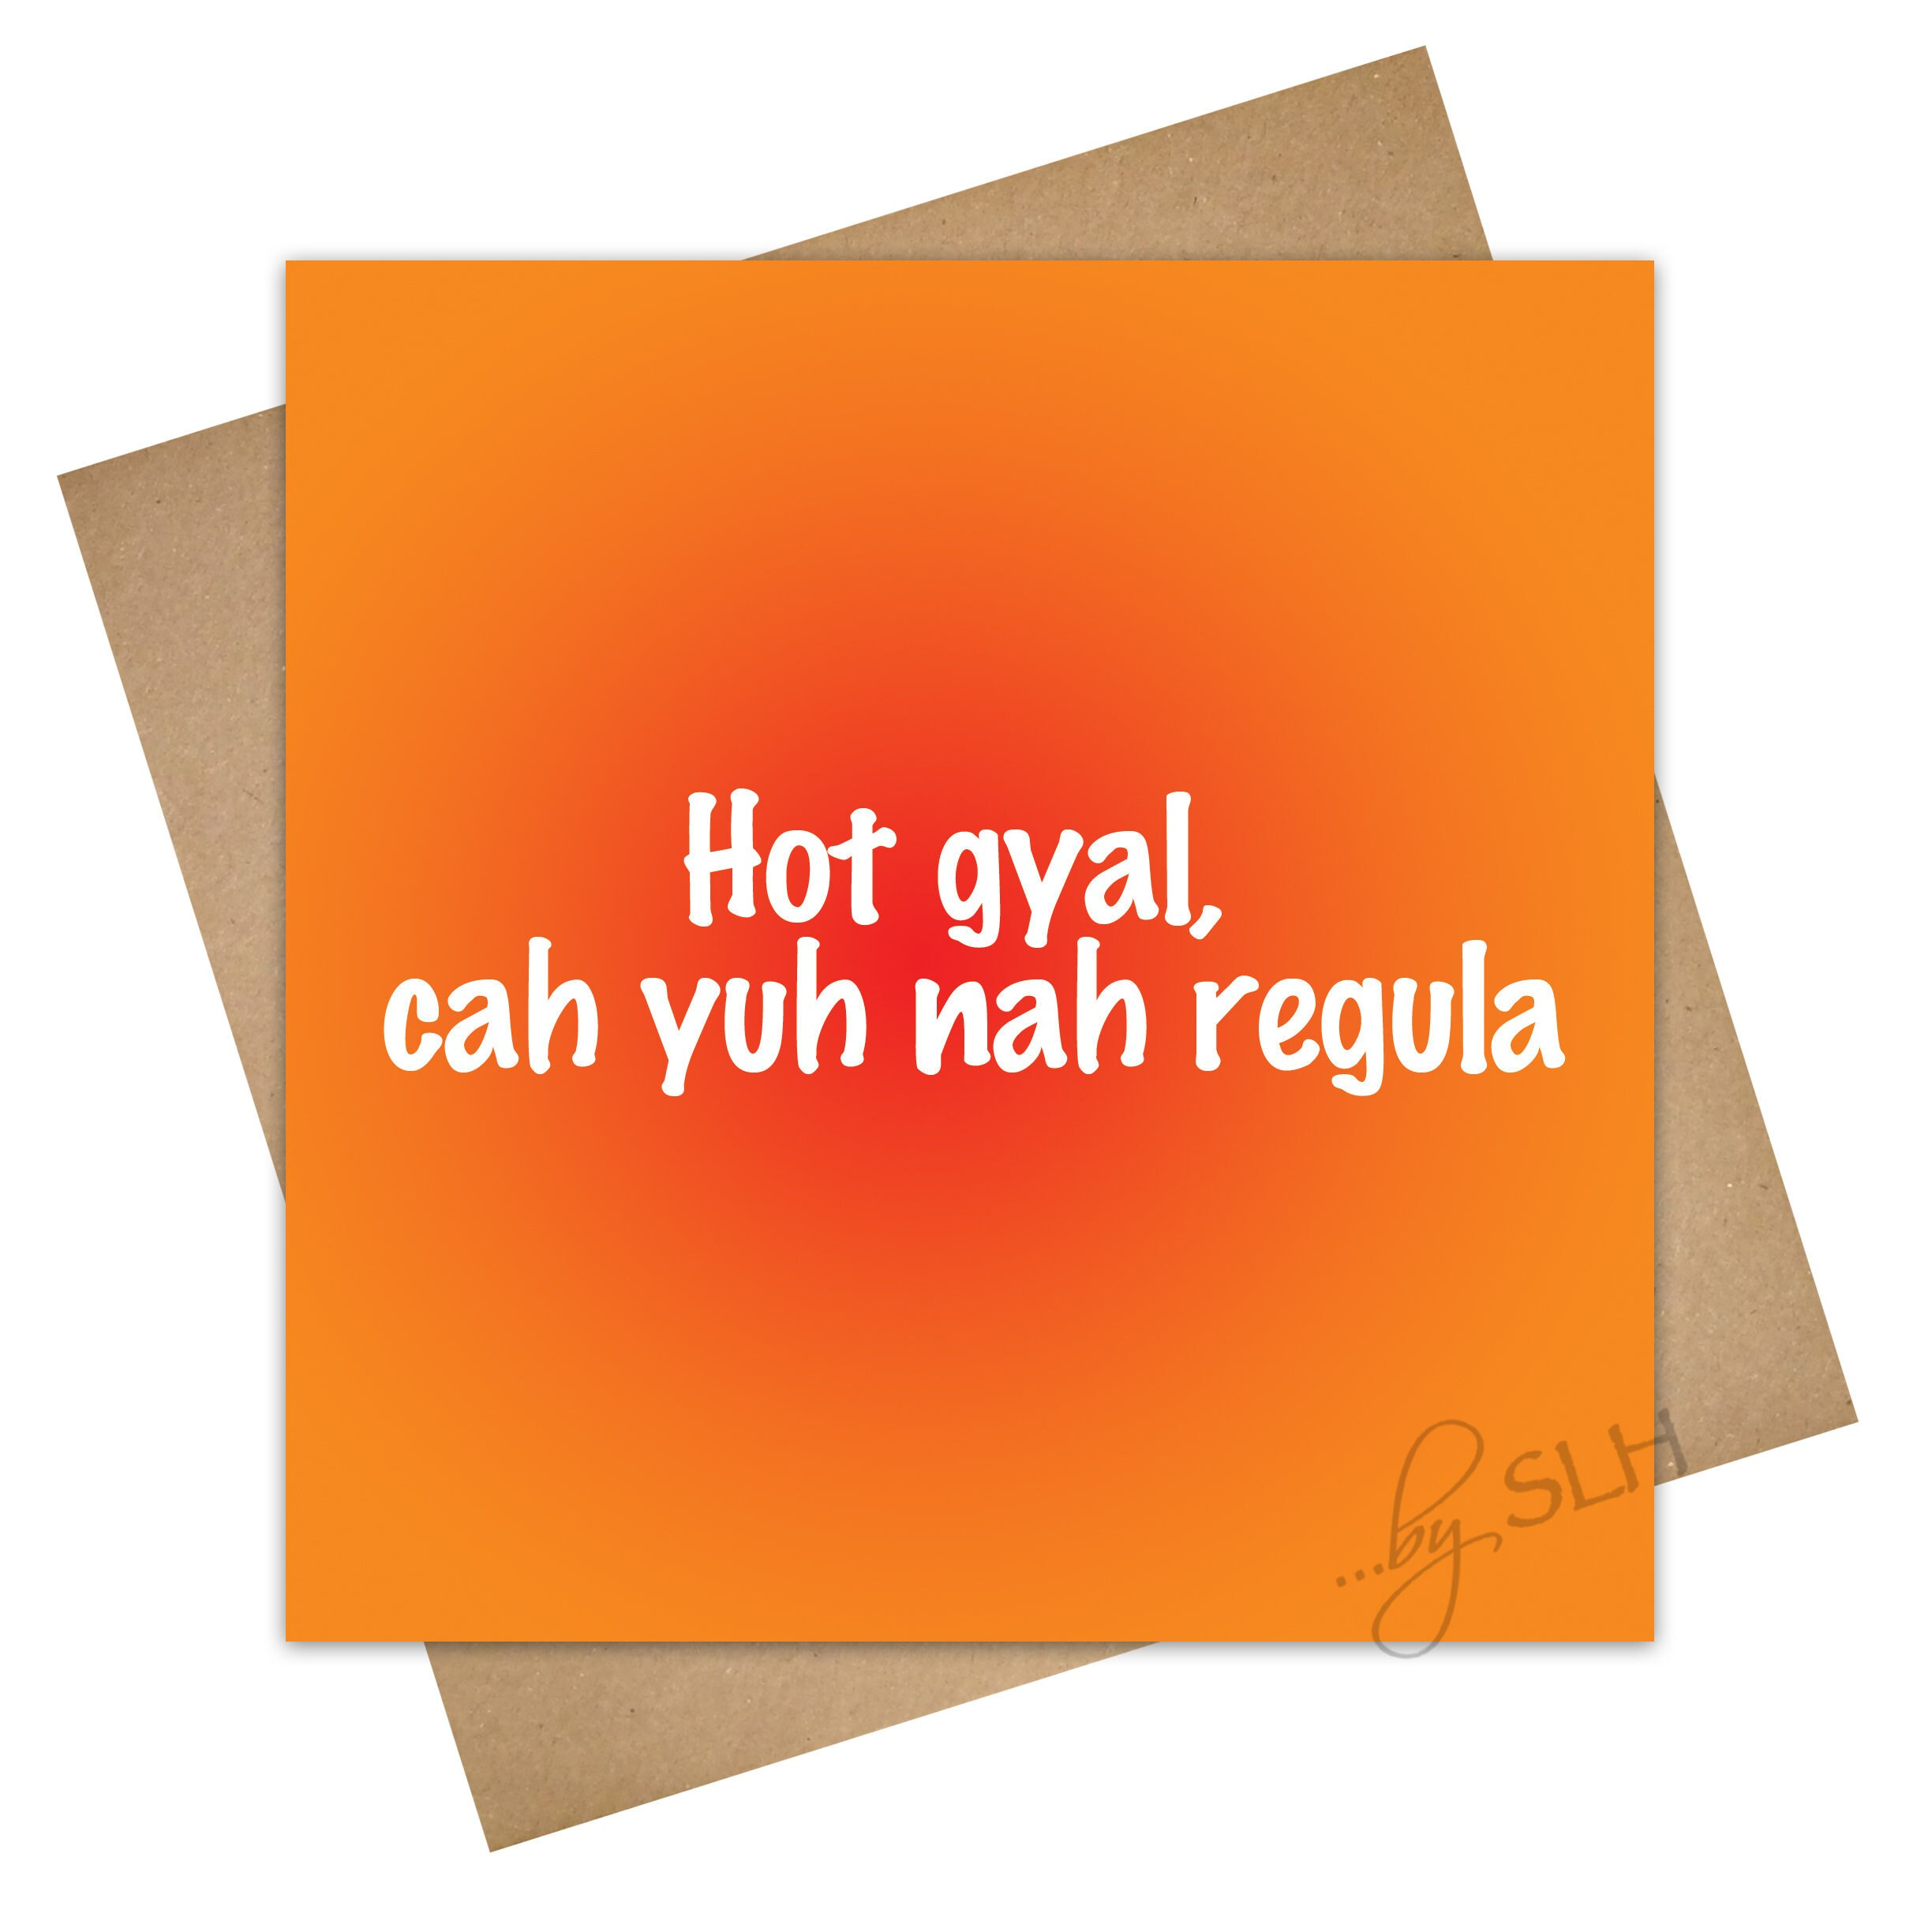 Greetings Card Hot Gyal Unique Funny Jamaican Patois Etsy